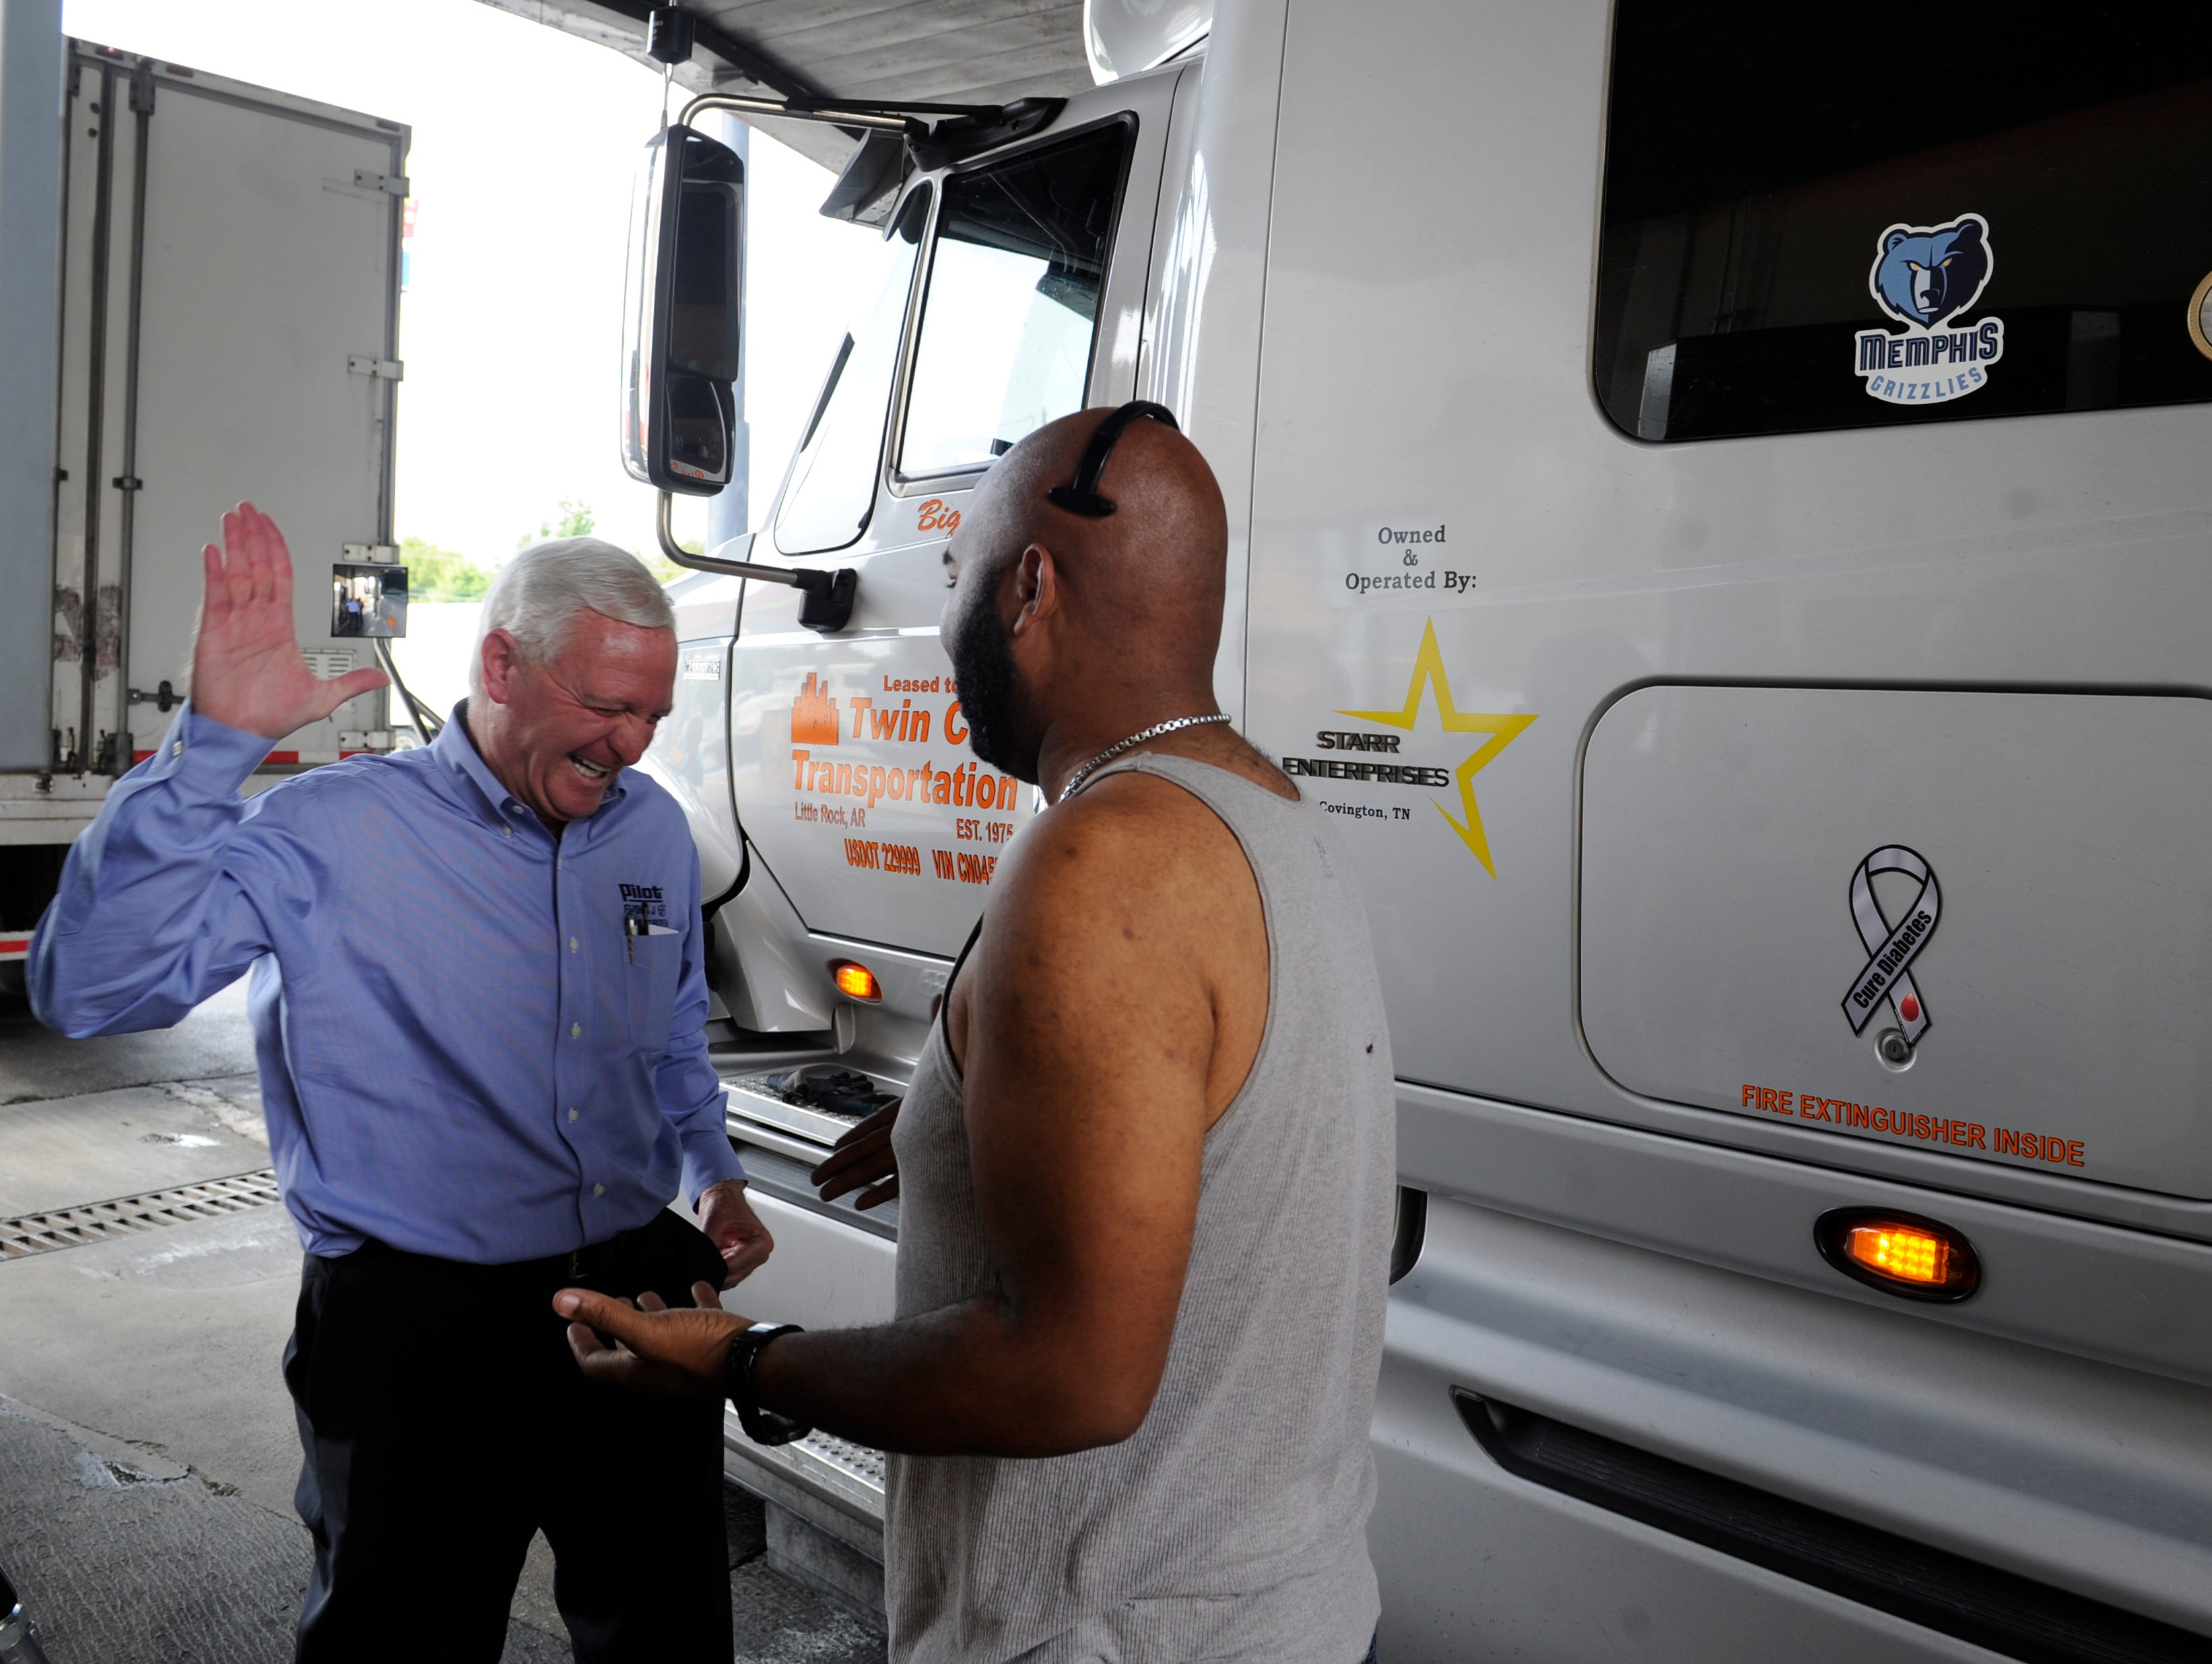 """Pilot CEO Jimmy Haslam visits with driver Prince Starr at the Pilot Travel Center off Lovell Road, Tuesday, Sept. 14, 2013. Pilot declared September """"Driver Appreciation Month"""", Mr. Haslam visits stores and greets customers three days a week."""